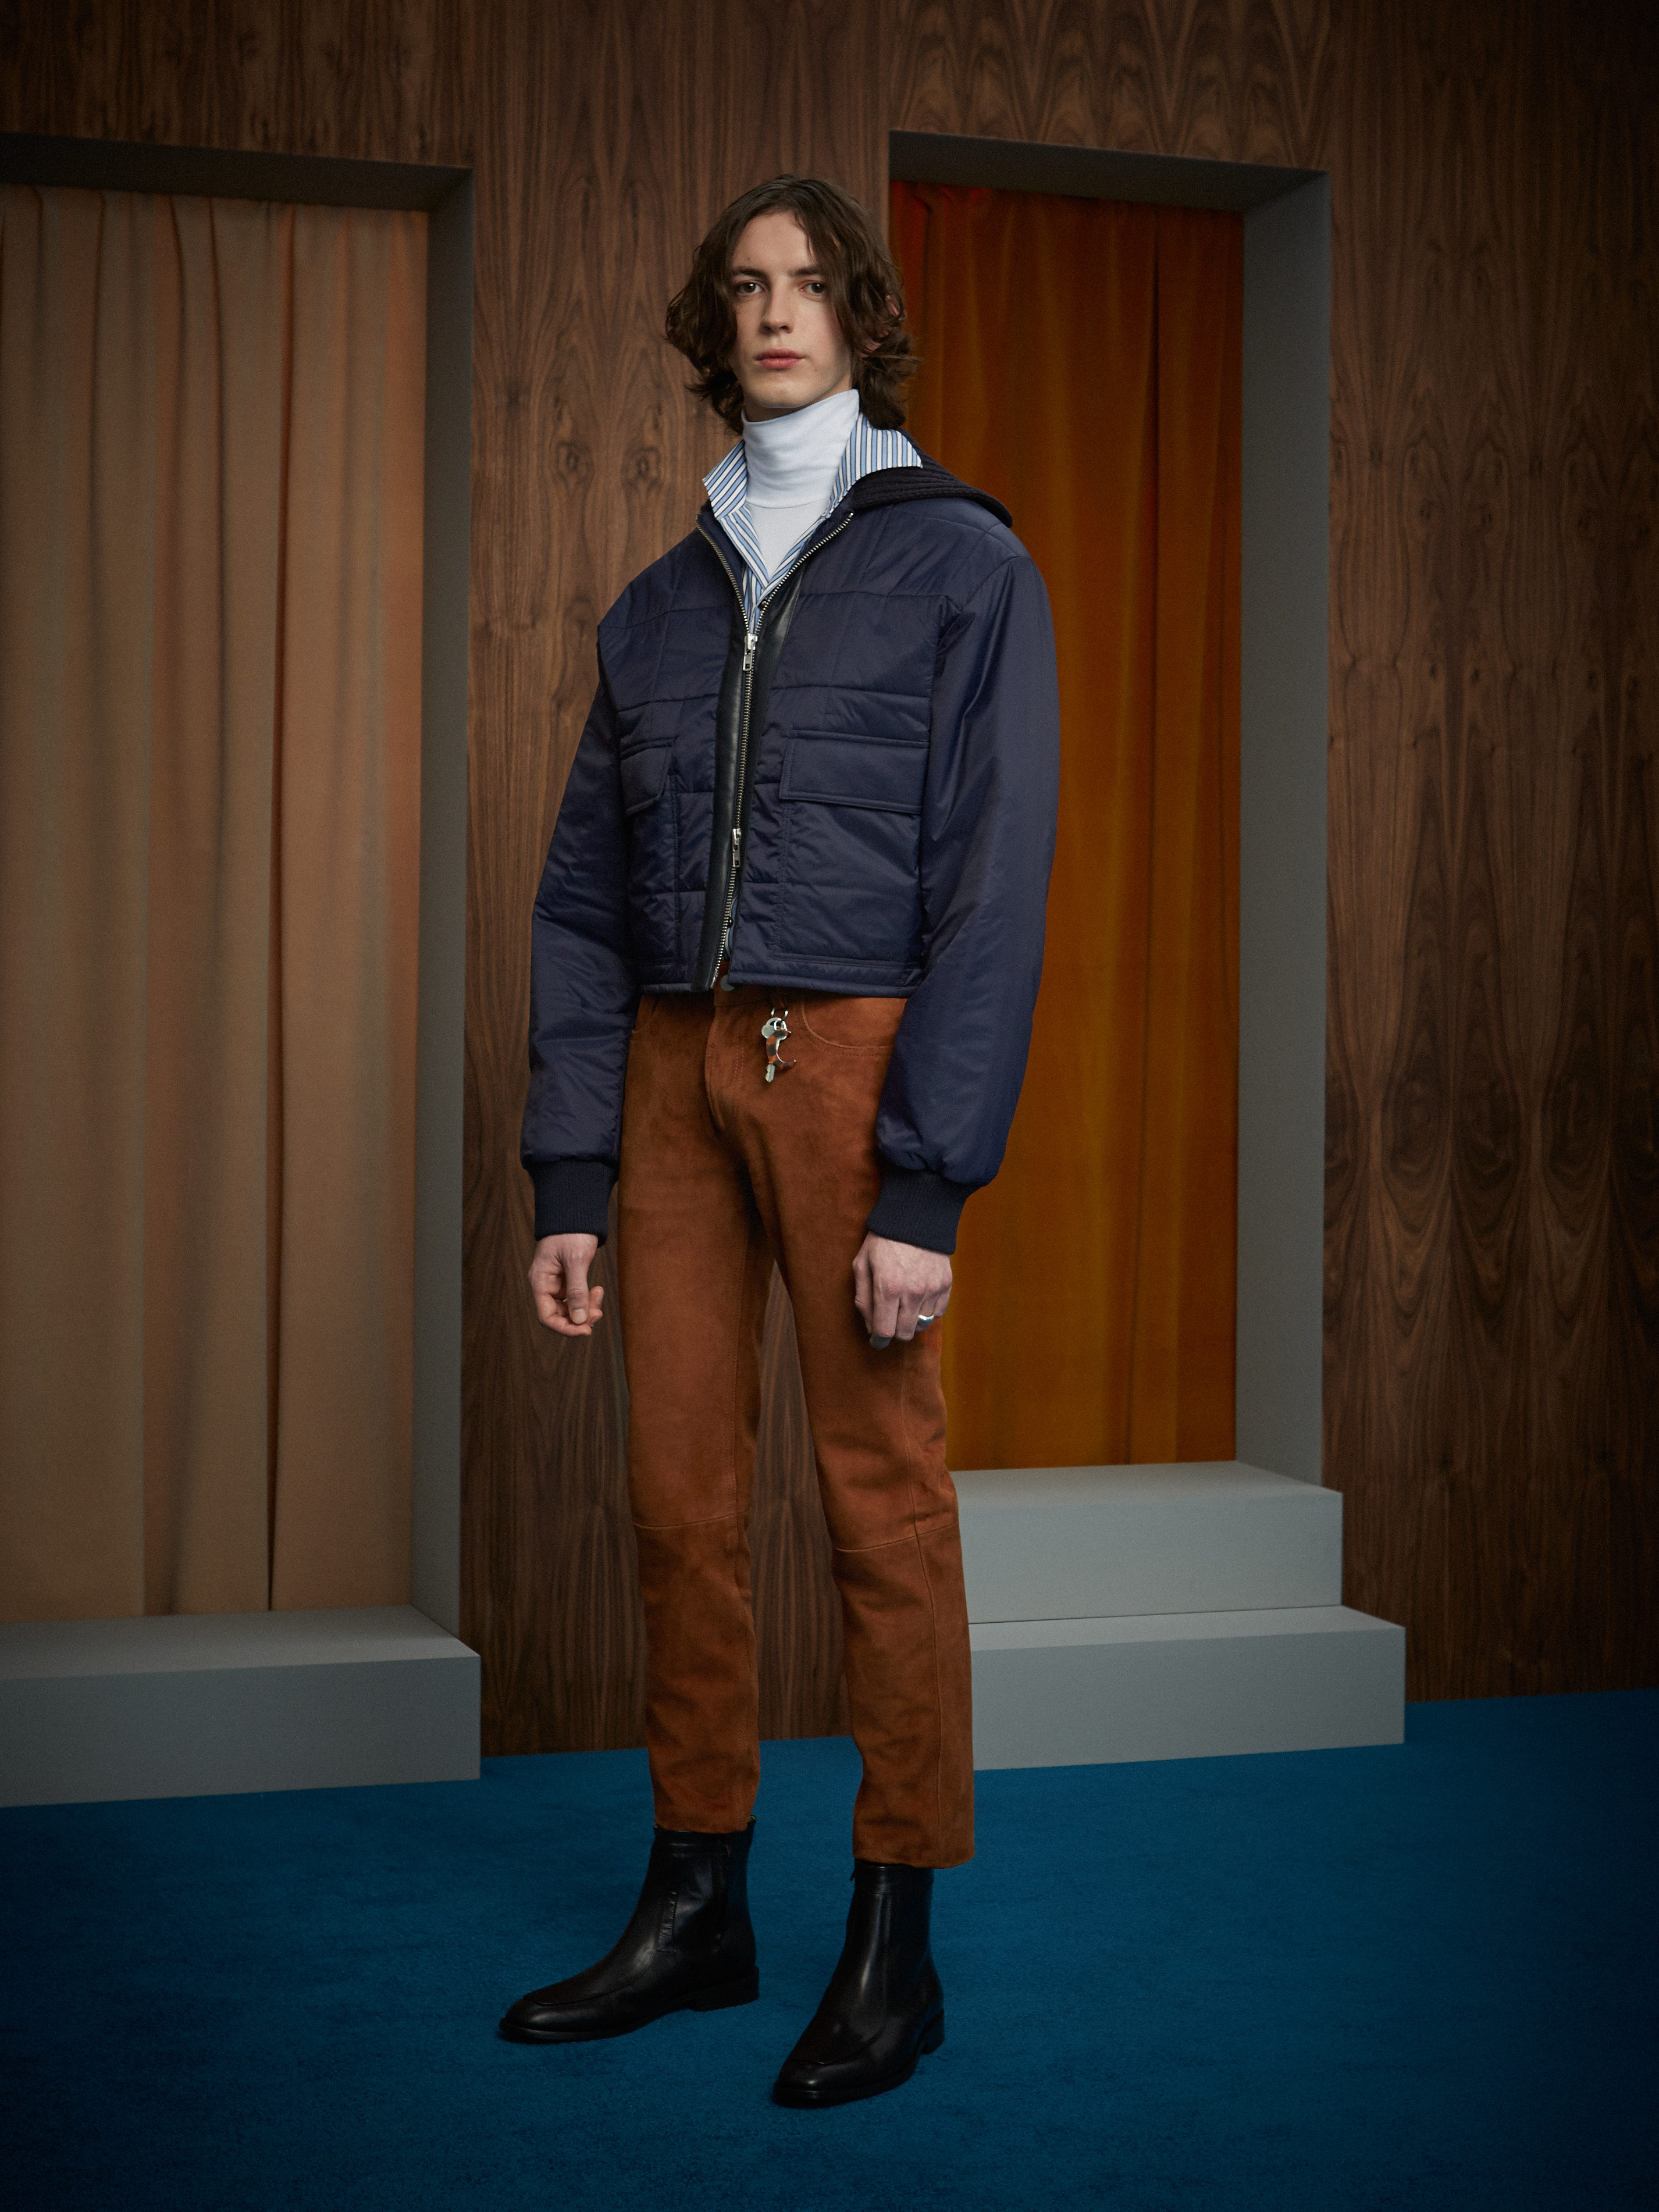 20160108_CMMN_AW16_LOOKS_SHOT_003_0122.jpg